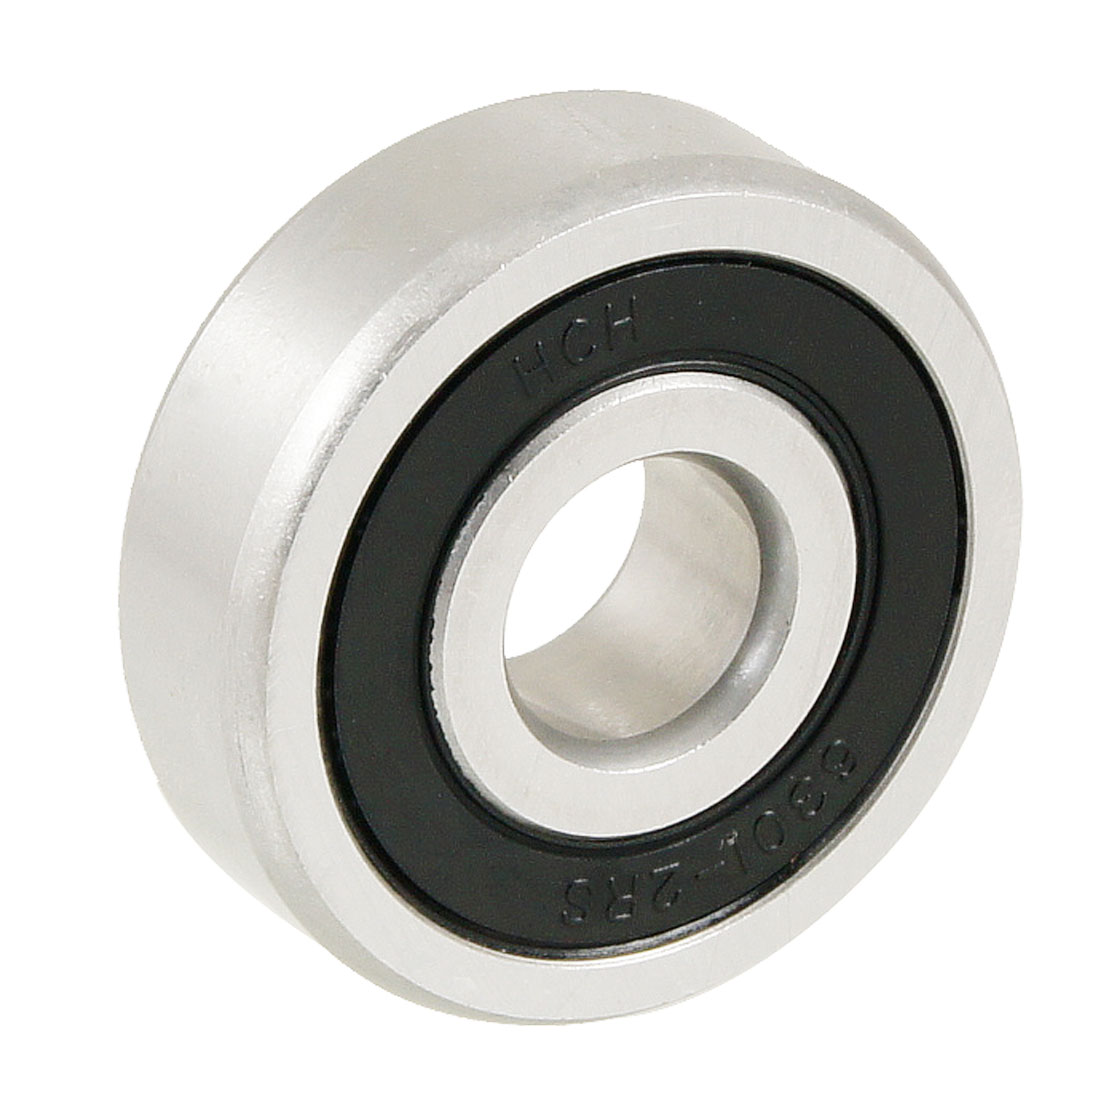 36.7mm x 12mm x 7mm Deep Groove Ball Bearing for Roller-Skating6301 2RS